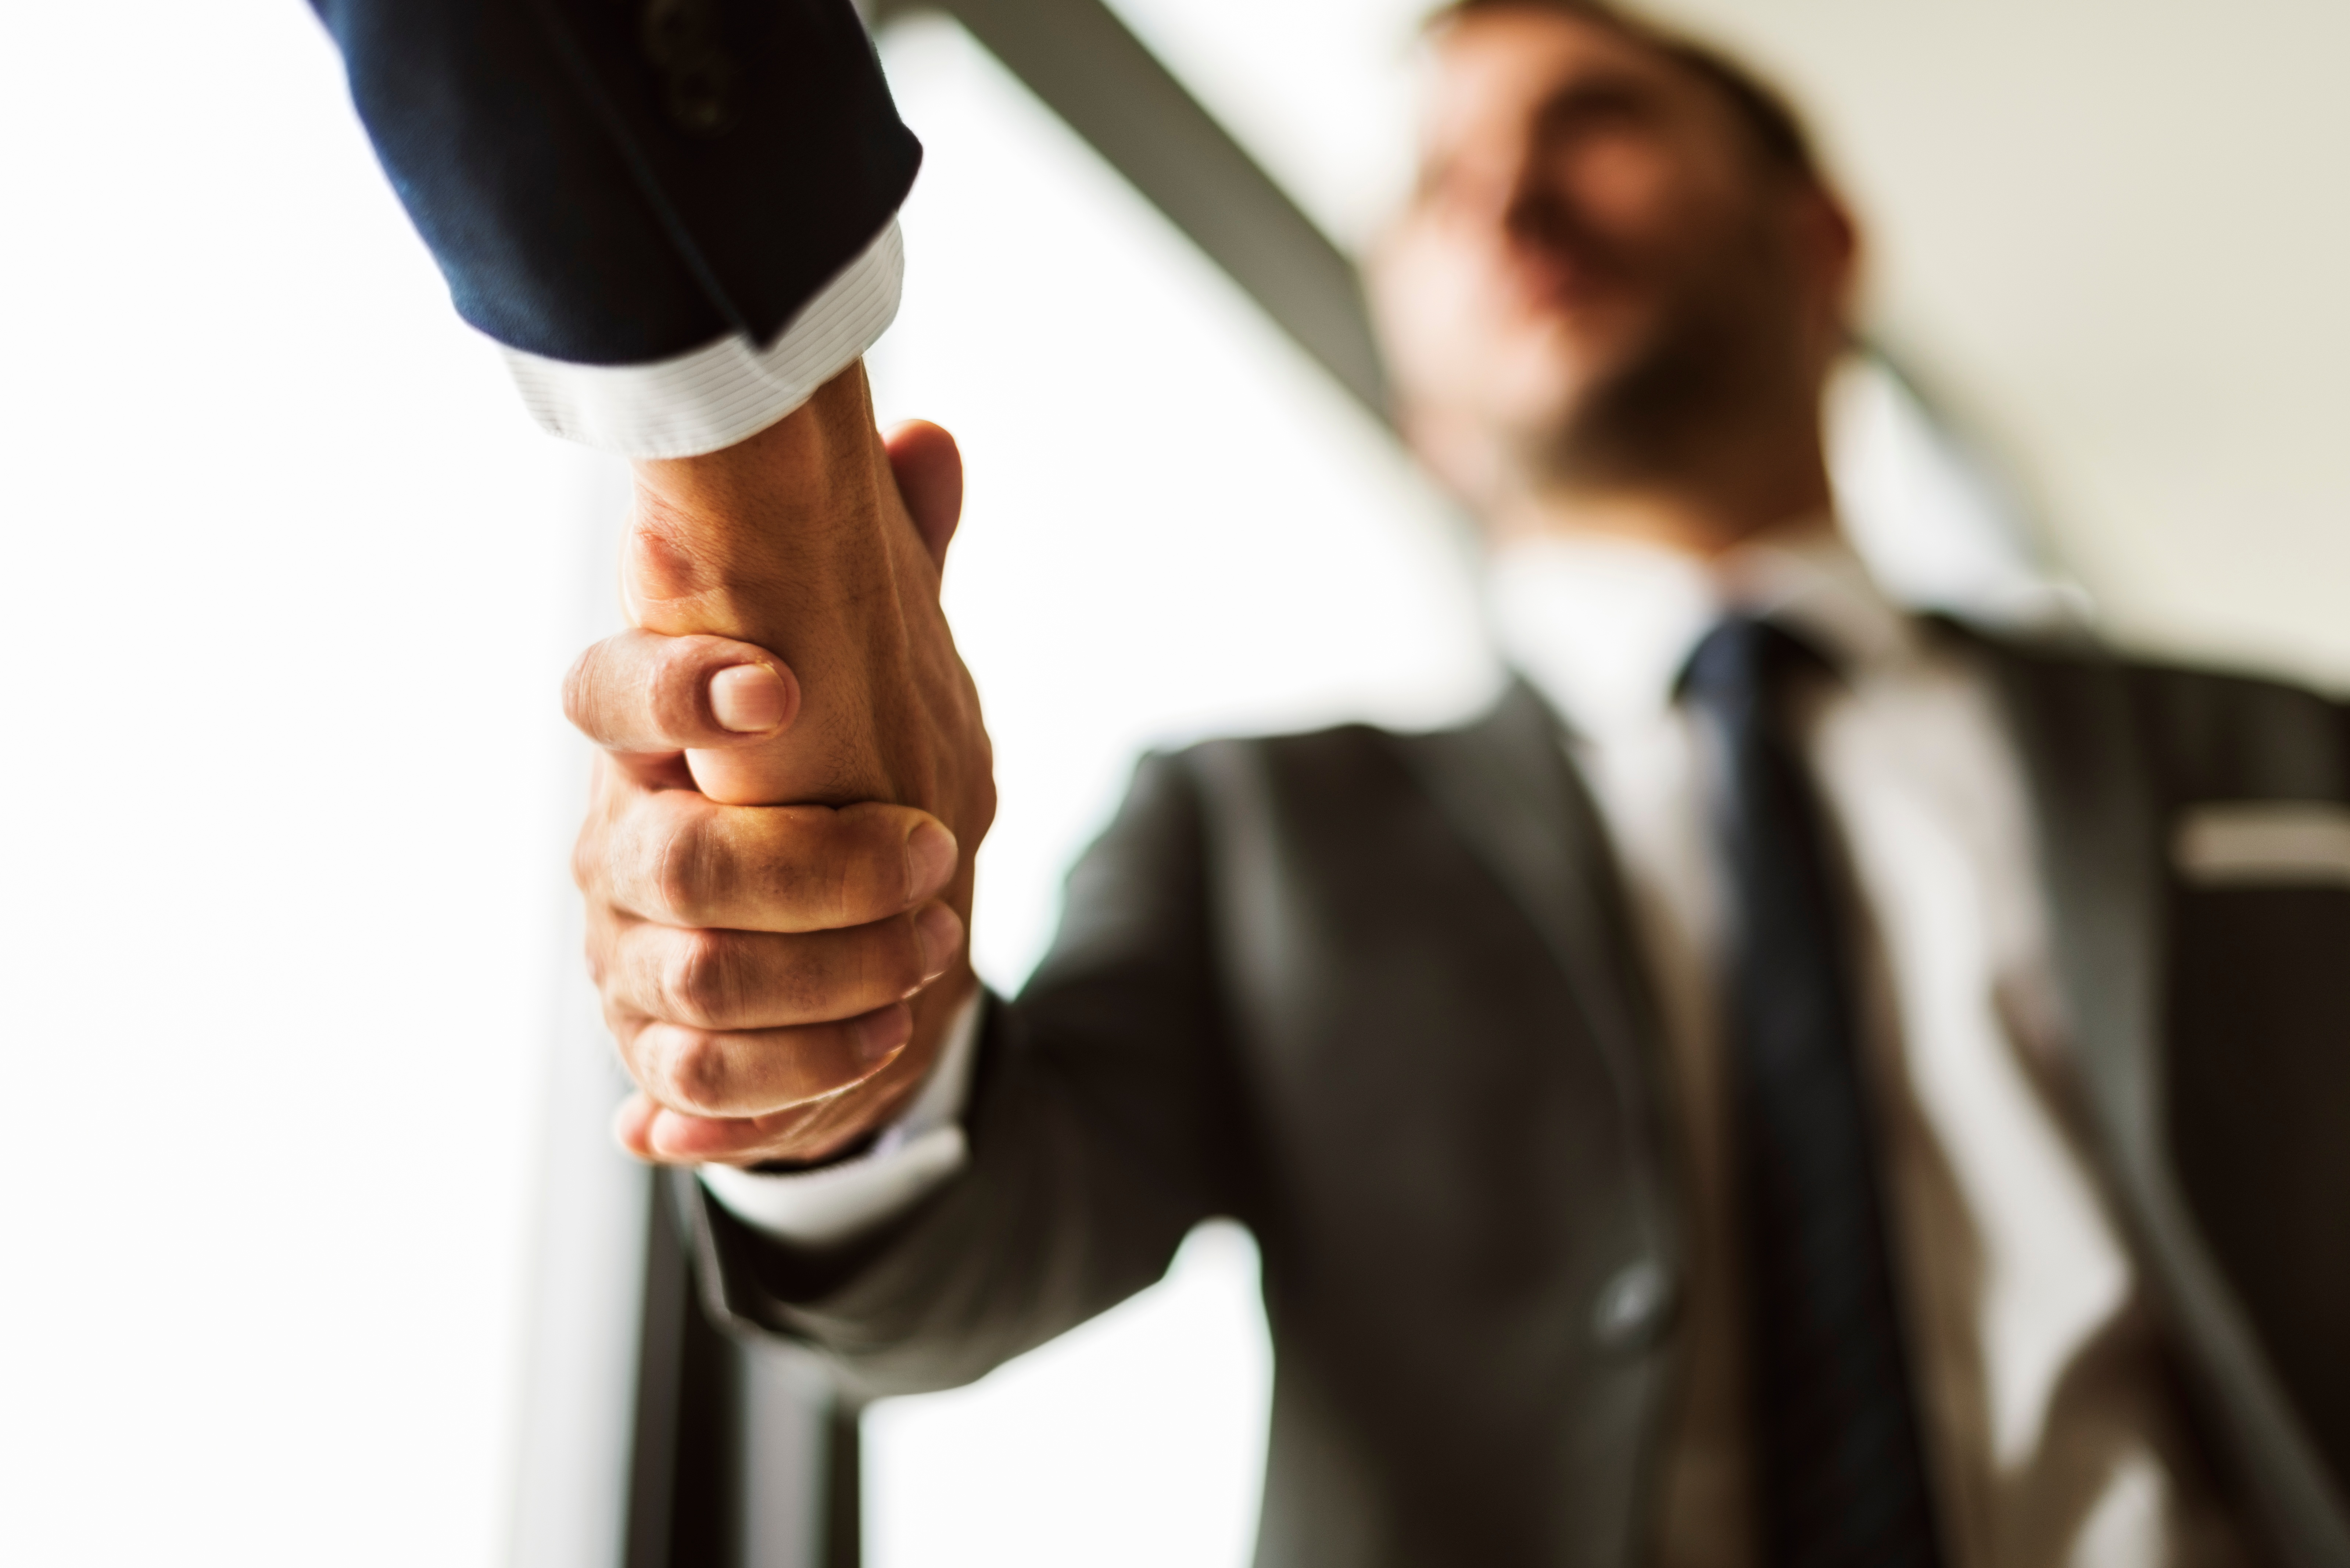 deal-businessmen-handshake-partnership-concept-PF3GLKS.jpg